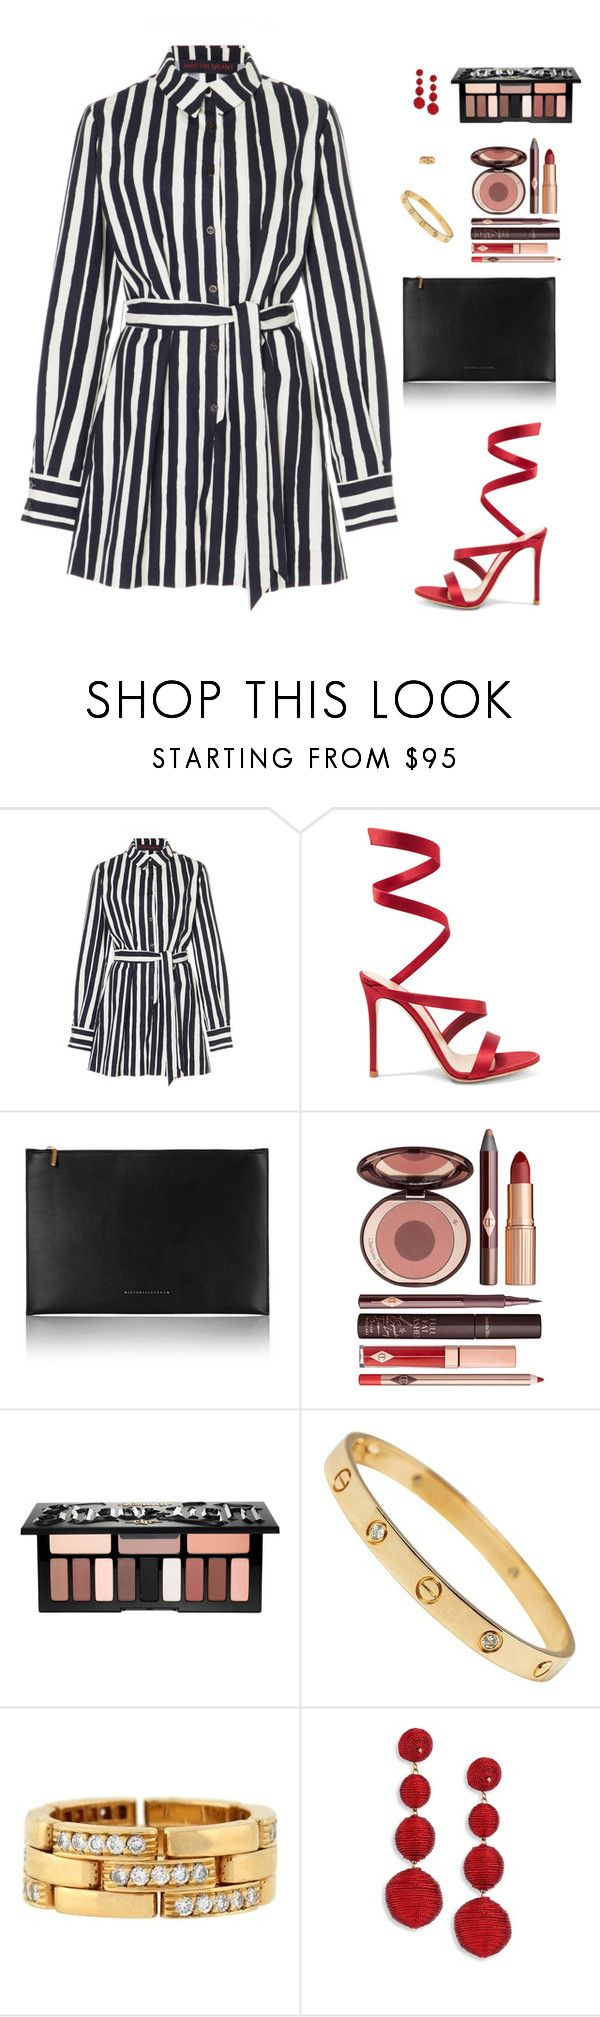 """Untitled #5037"" by mdmsb on Polyvore featuring Martin Grant, Gianvito Rossi, Victoria Beckham, Charlotte Tilbury, Kat Von D, Cartier and Kenneth Jay Lane"